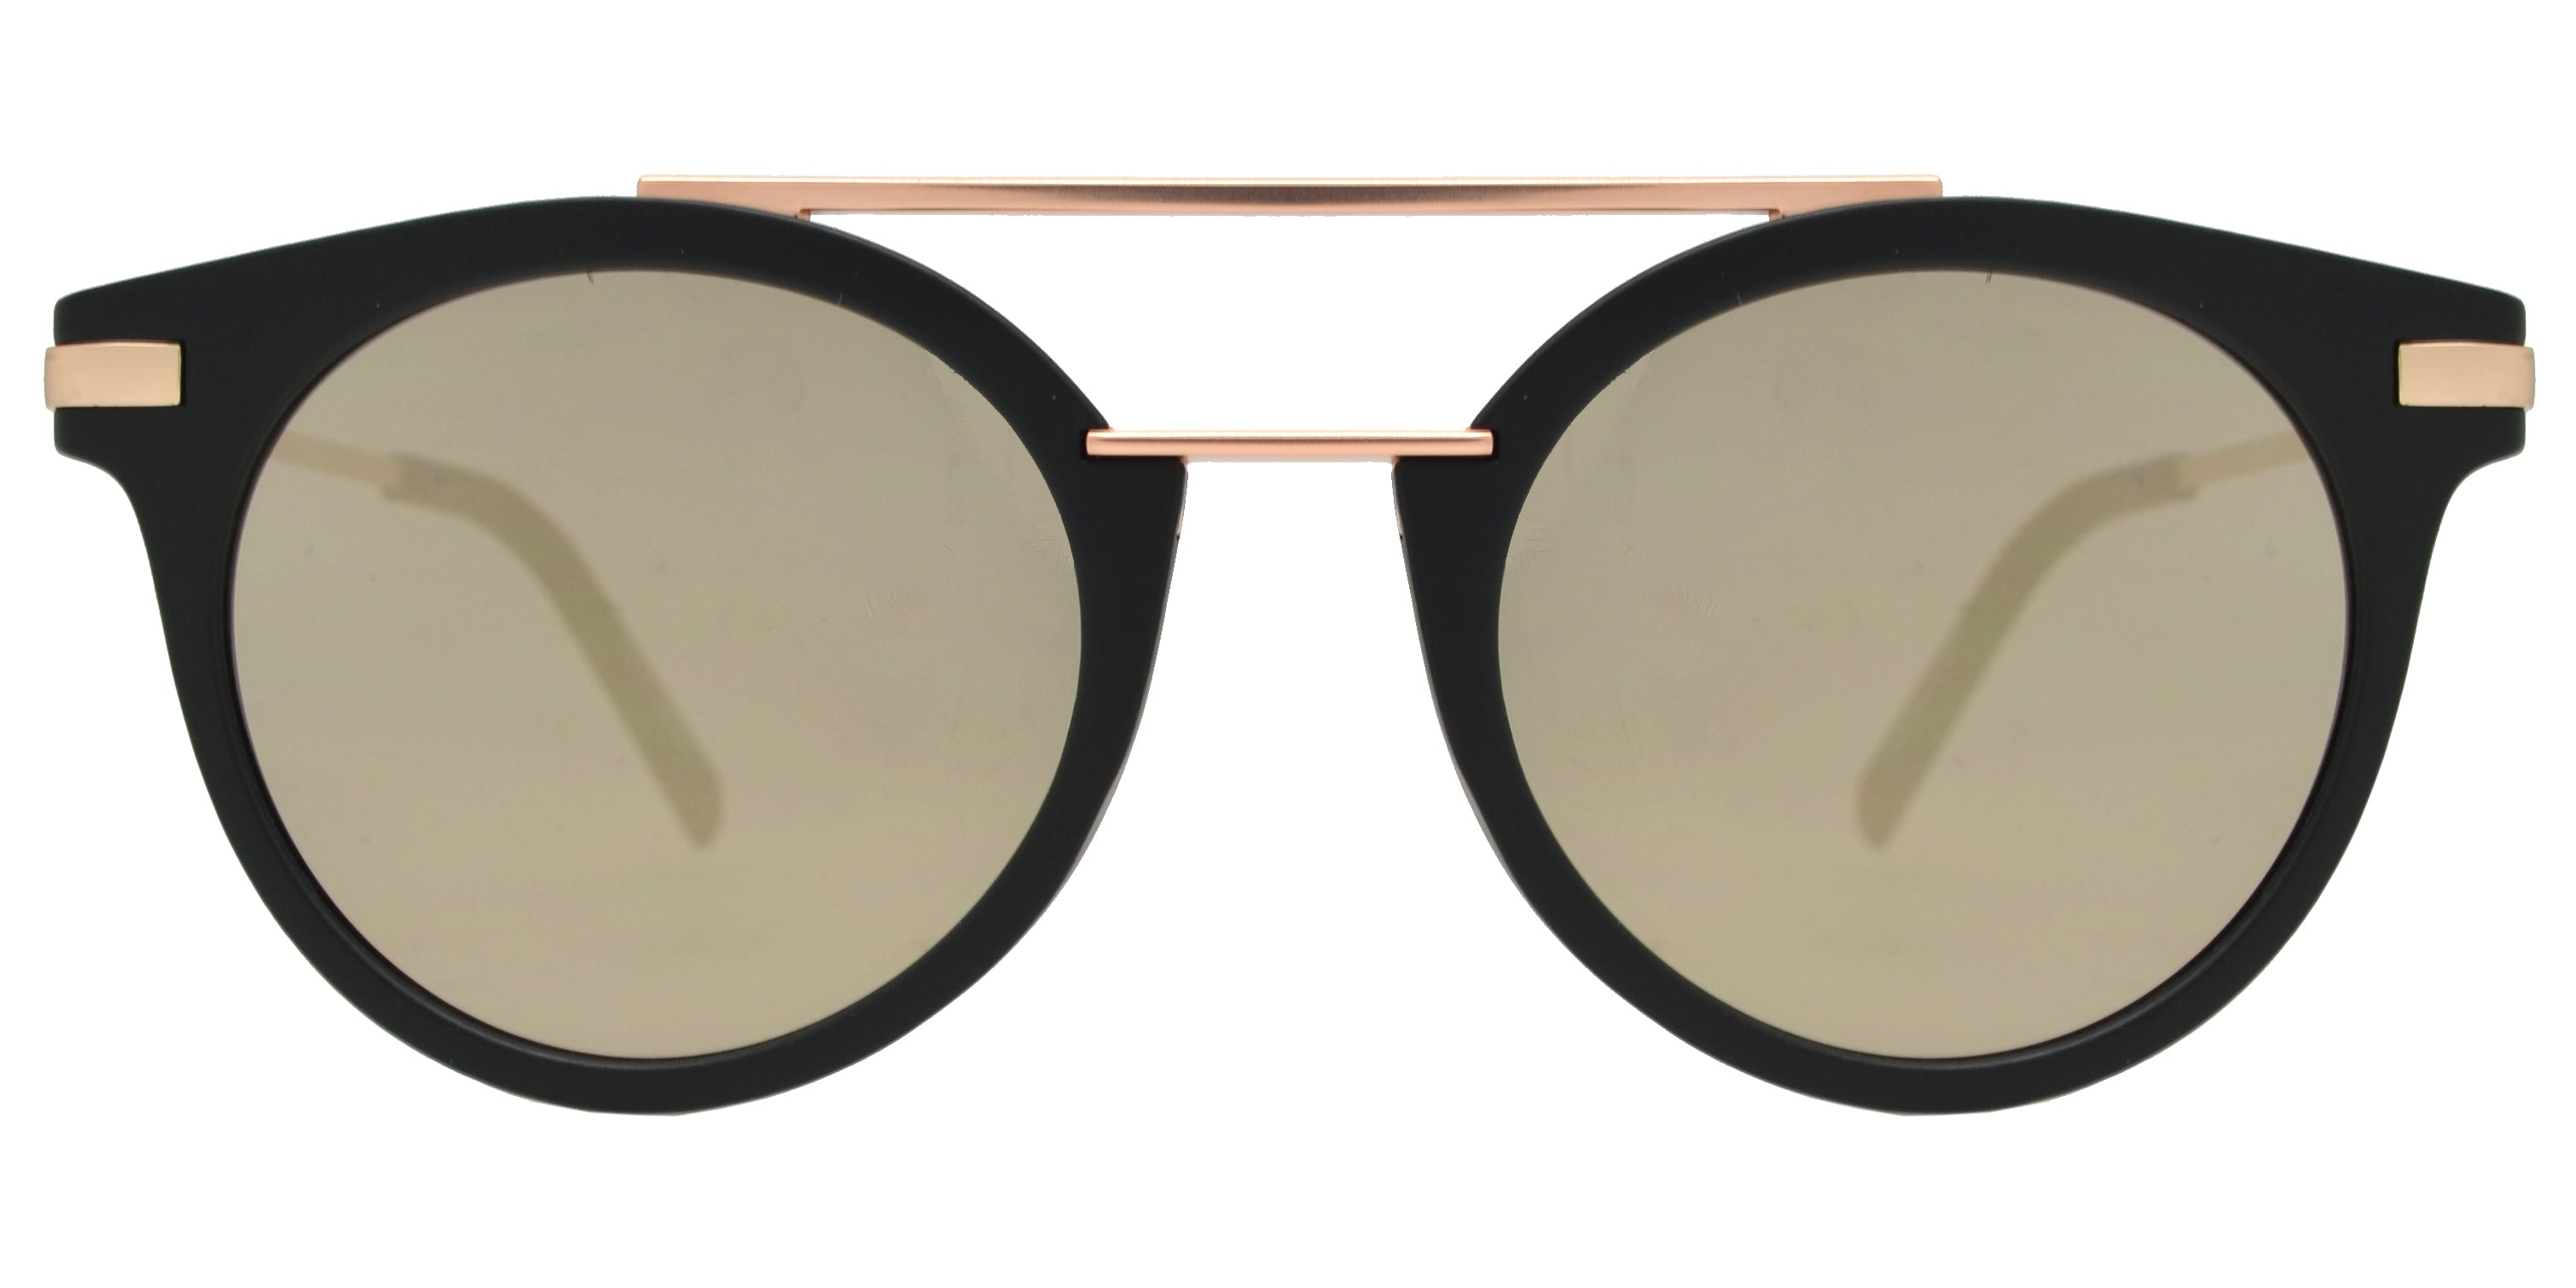 FC 6424 - Round Horn Rimmed Plastic Sunglasses with Flat Lens and Brow Bar